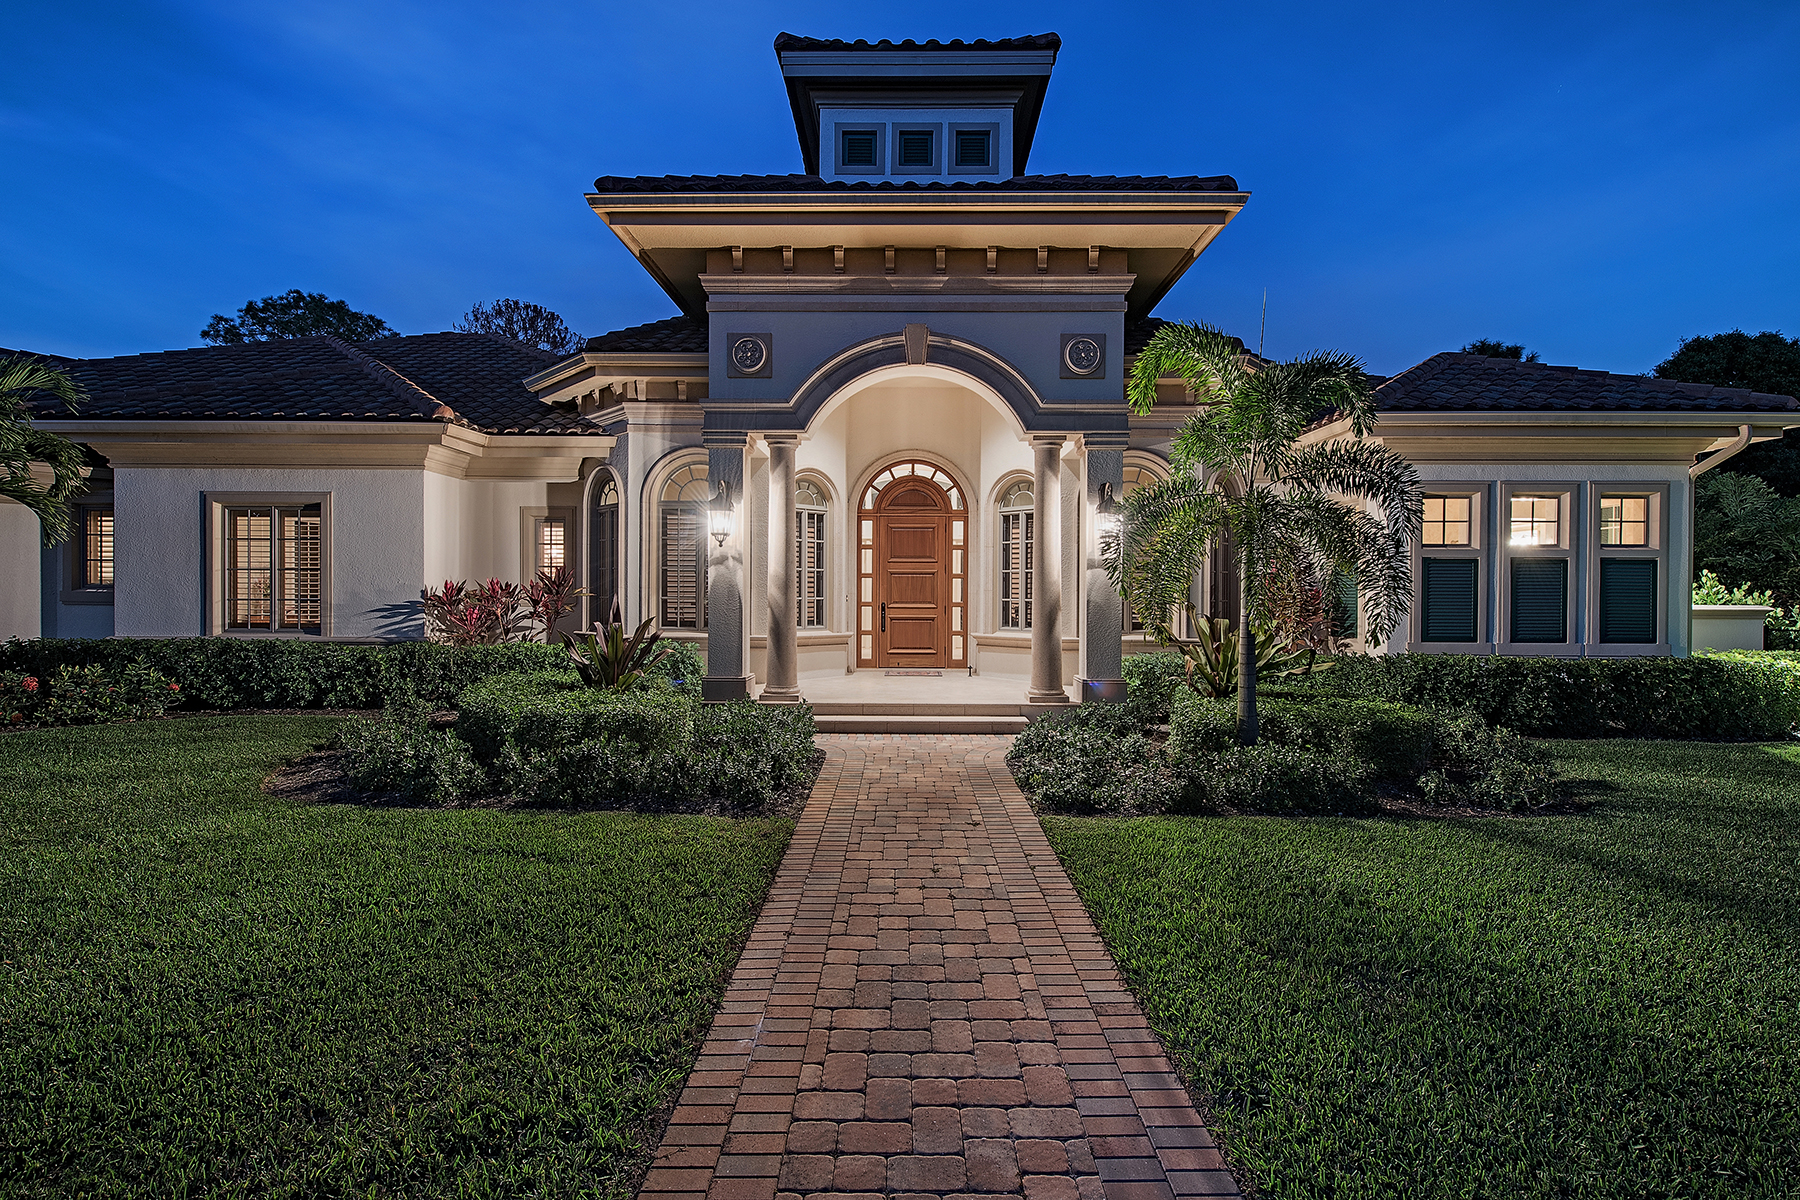 Single Family Home for Sale at PINE RIDGE 612 Carica Rd Naples, Florida, 34108 United States